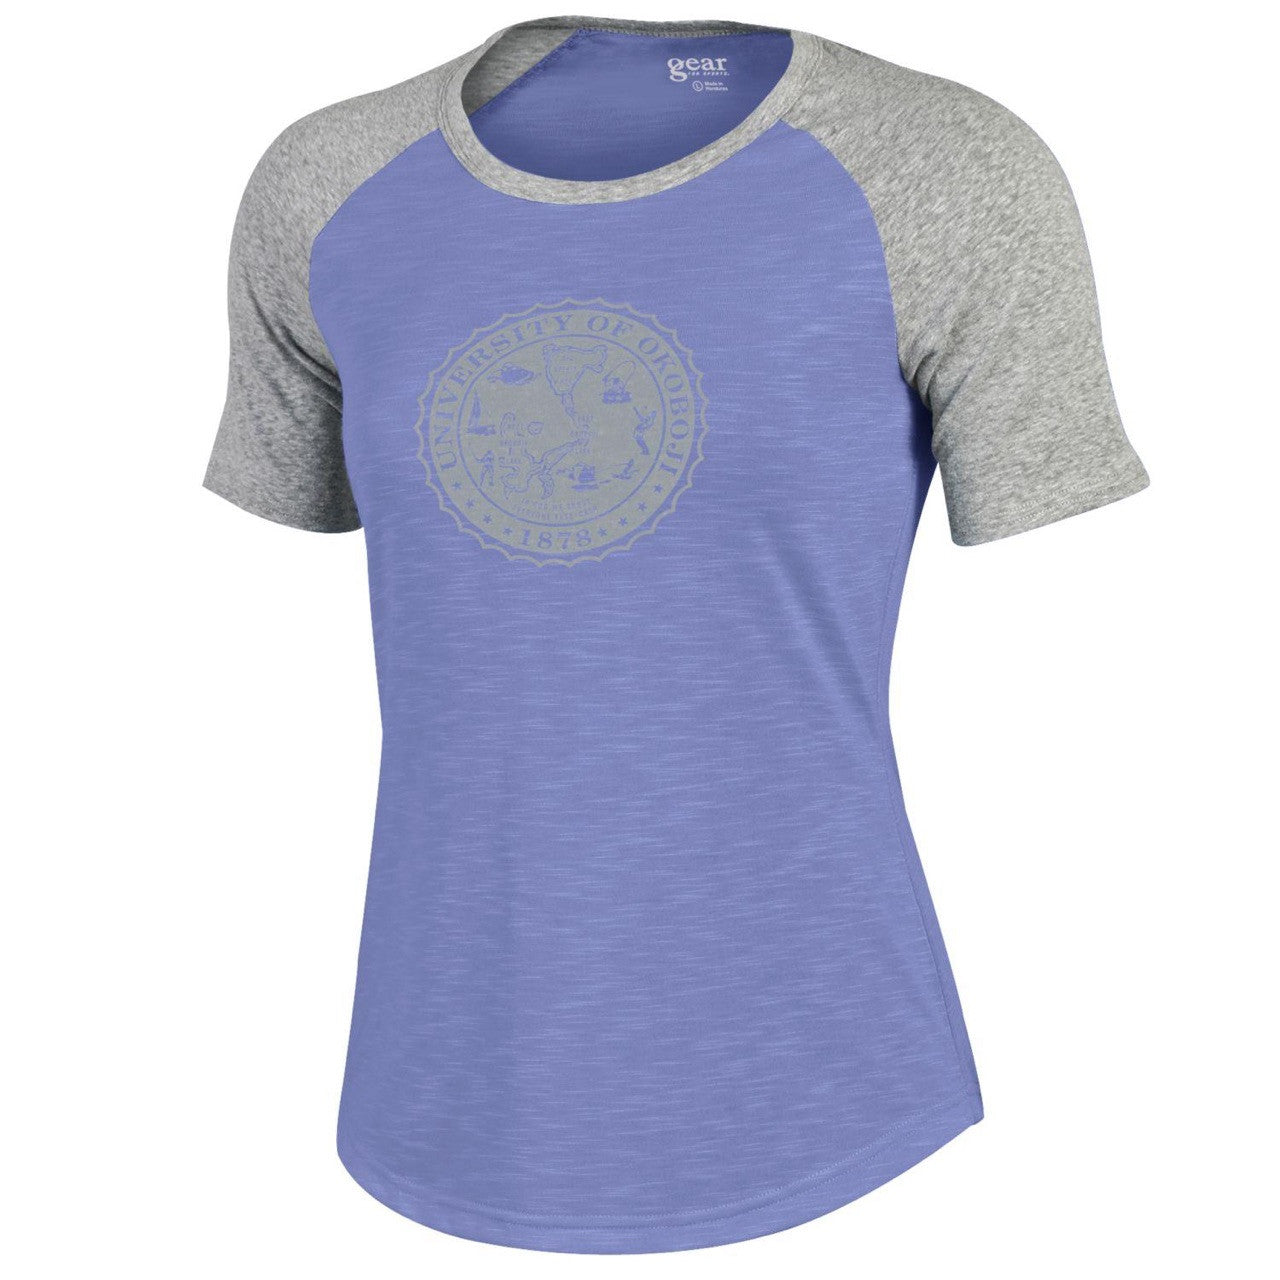 Women's Purple and Heather Gray Tee